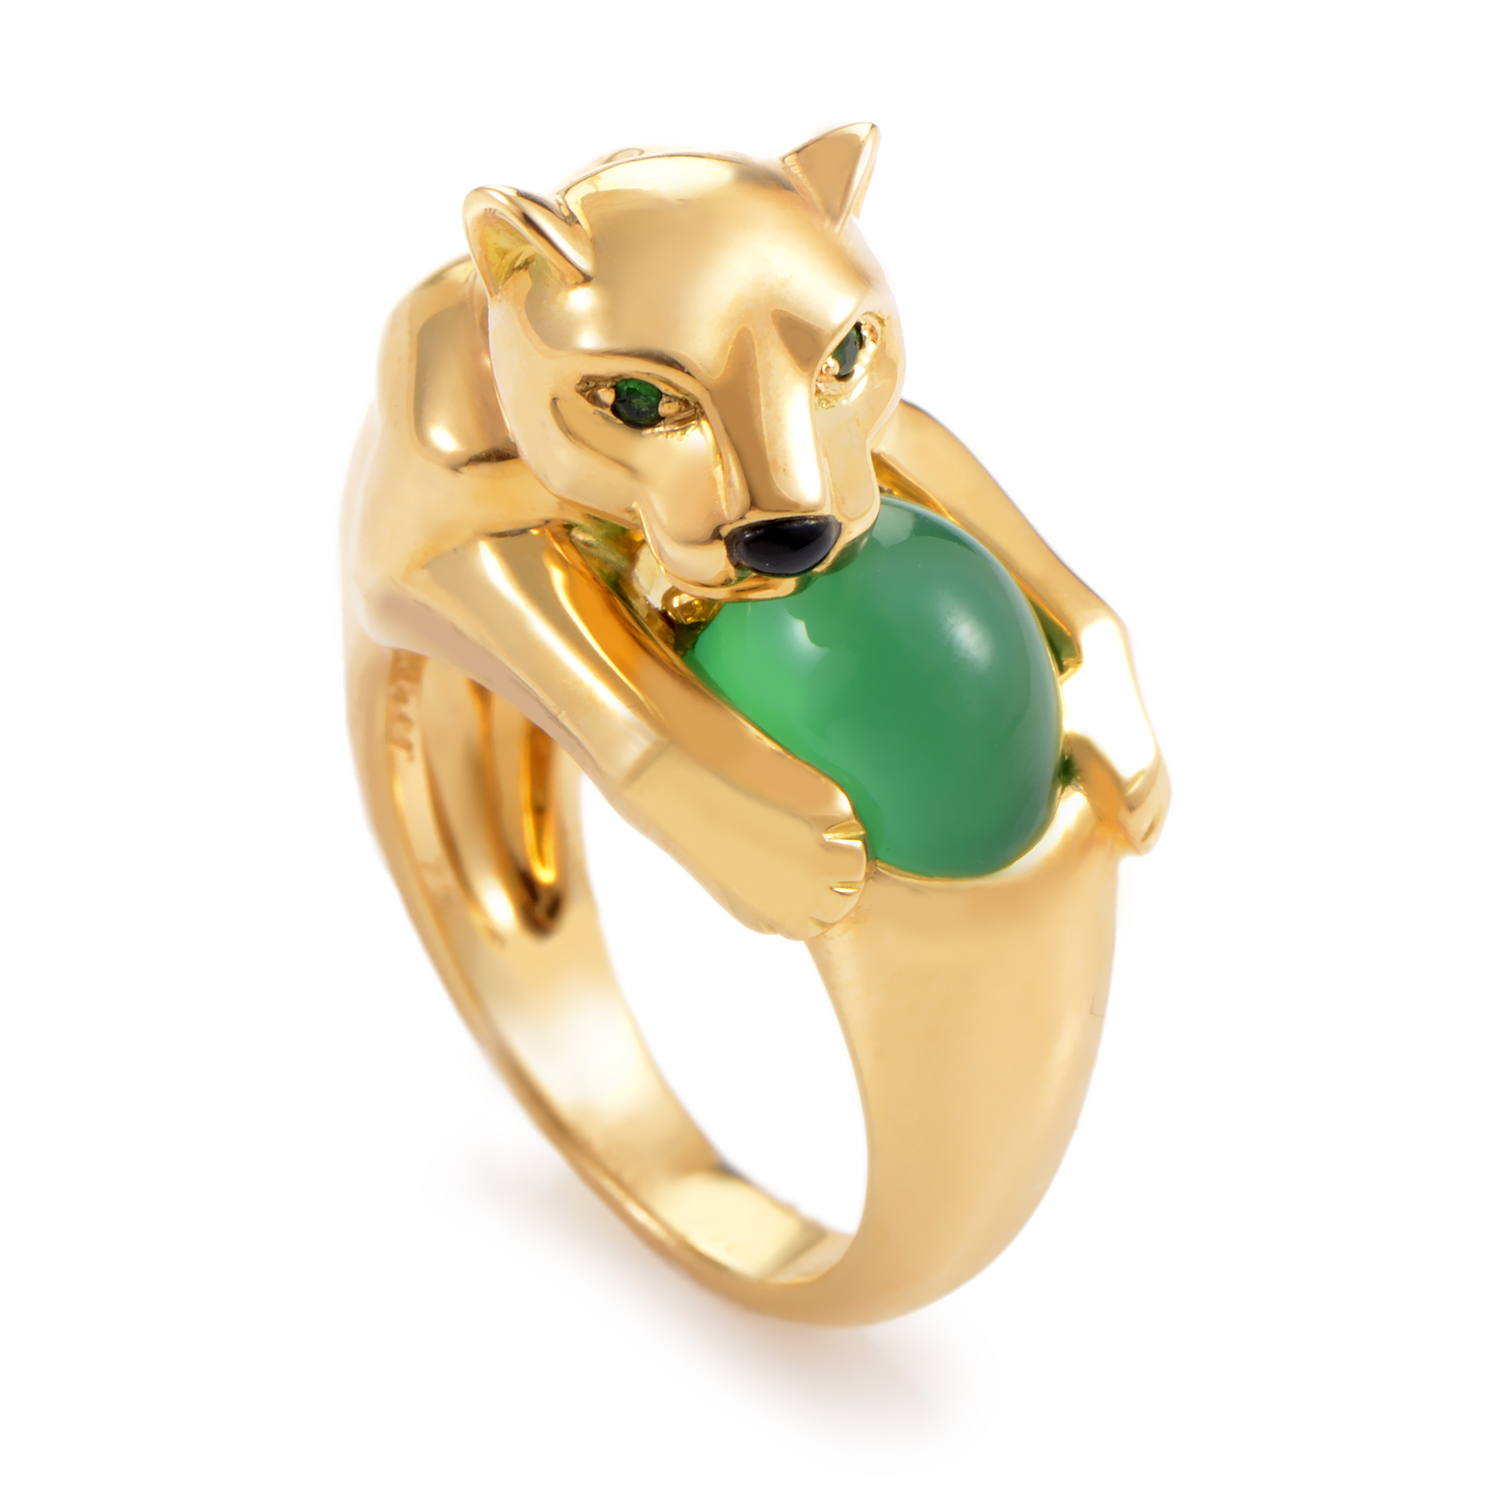 Cartier Panthere 18K Yellow Gold Onyx & Emerald Ring